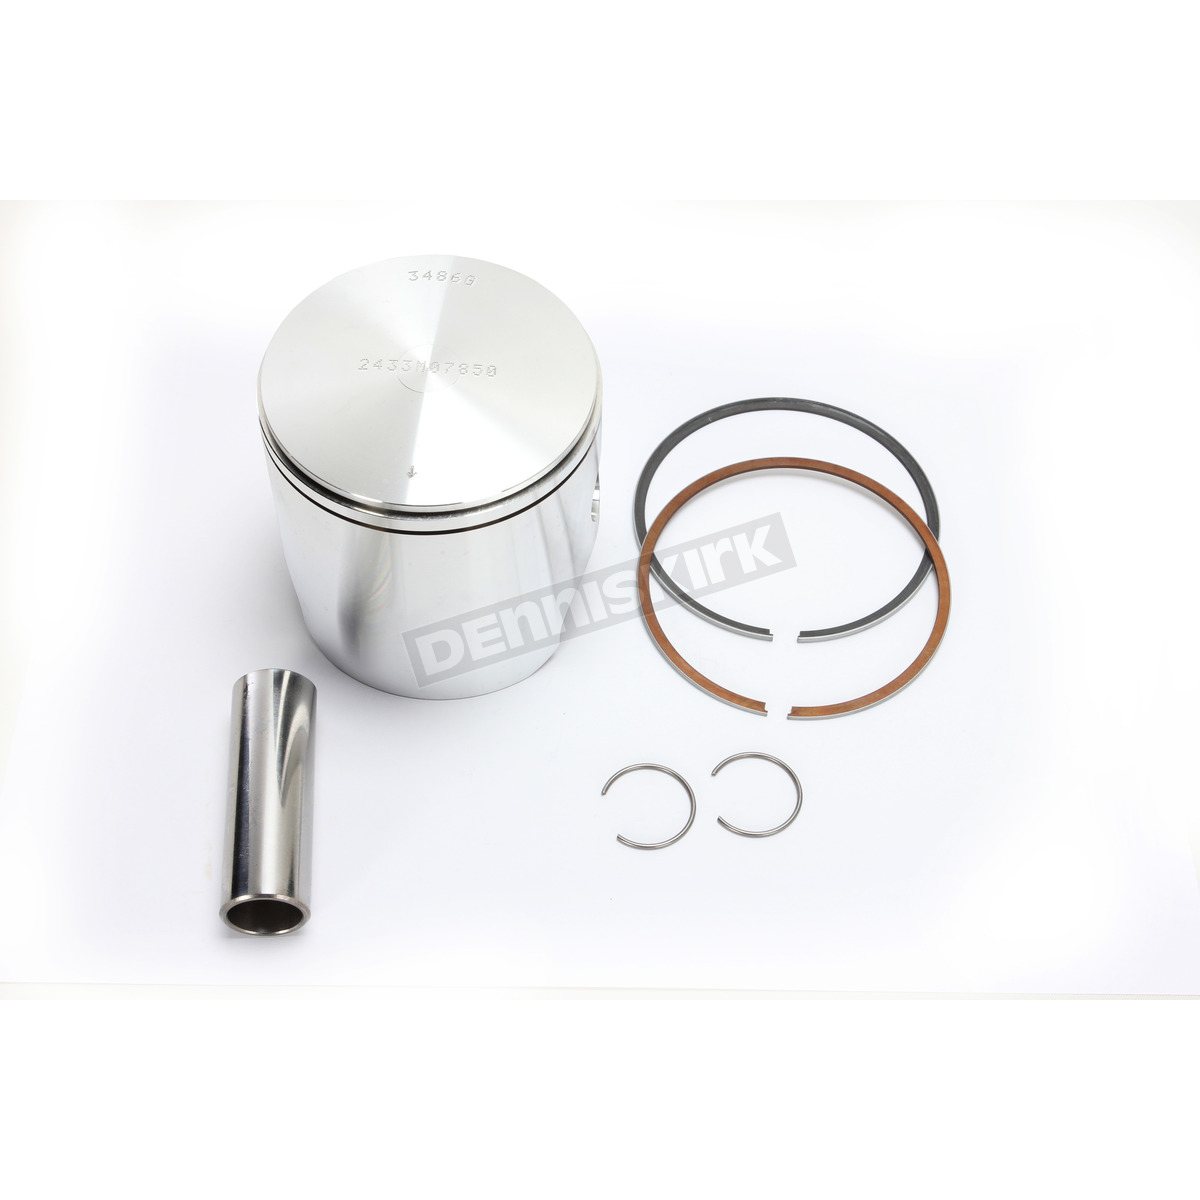 Motorcycle Engine Parts 50 Cylinder Bore Size 48 5mm: Wiseco High Performance Piston